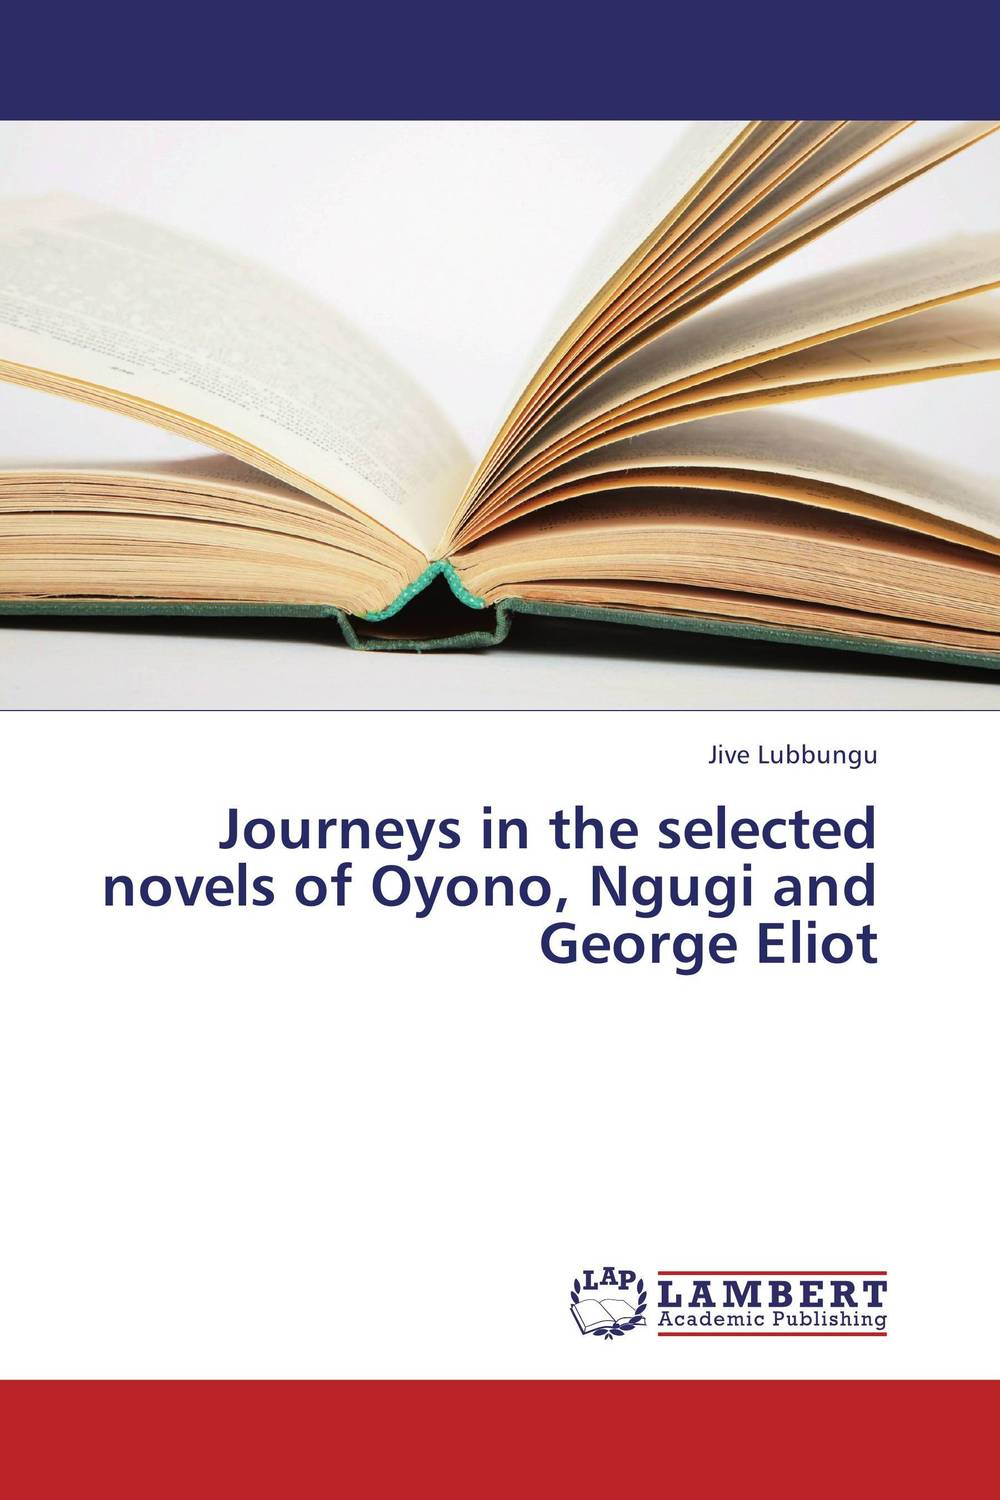 Journeys in the selected novels of Oyono, Ngugi and George Eliot chris wormell george and the dragon